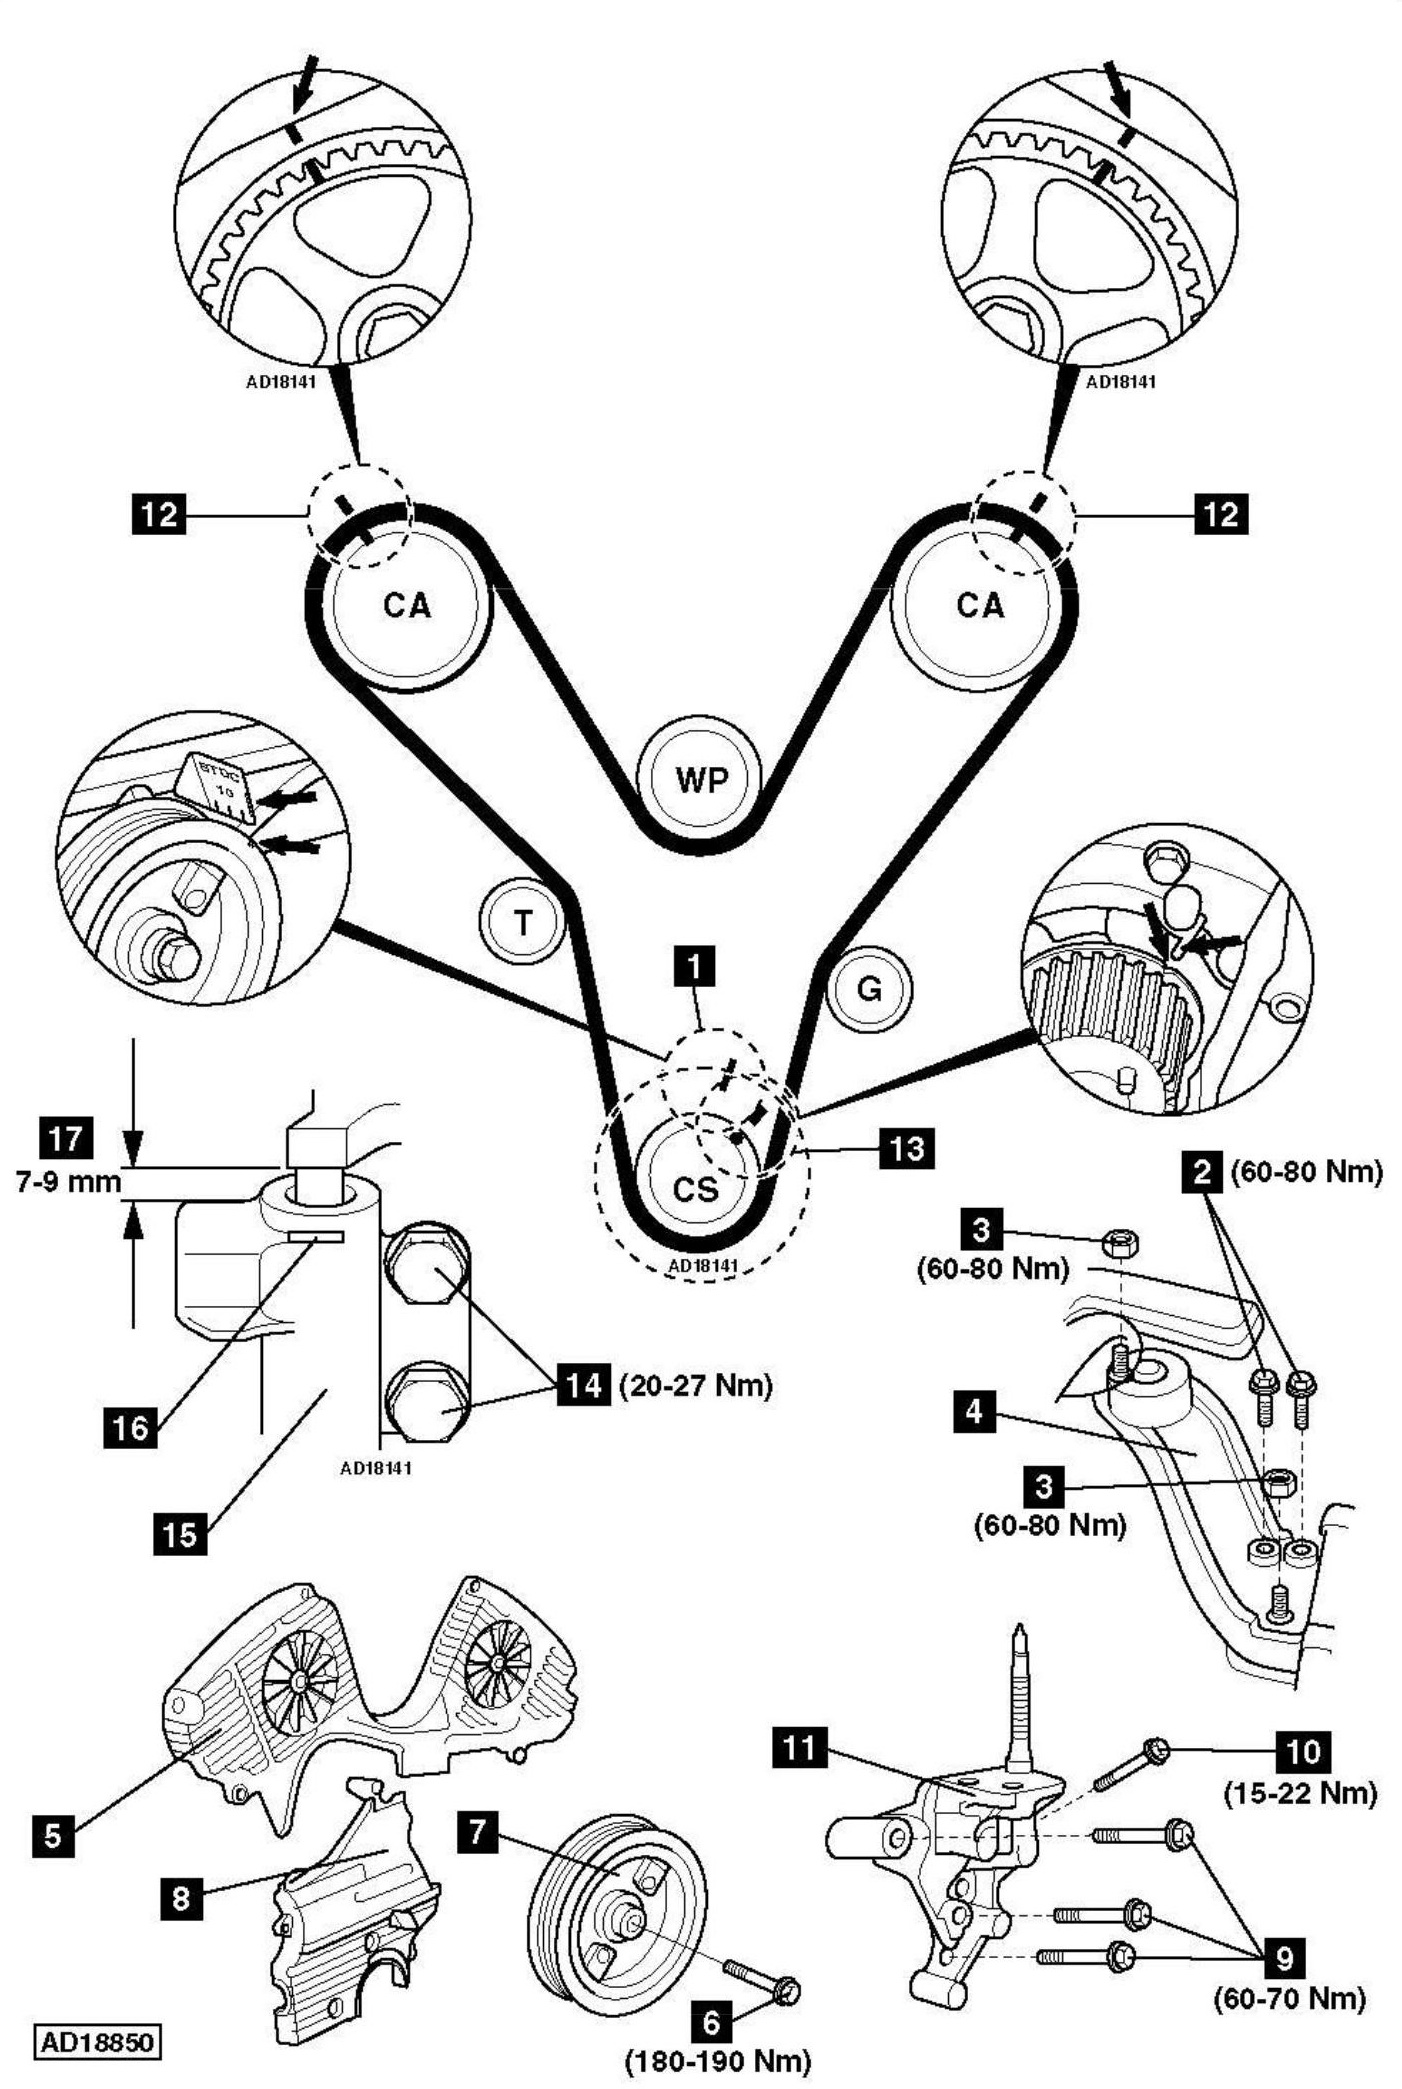 Kia Rio 1 6l Engine Diagram in addition Hyundai Santa Fe Purge Control Valve Location moreover 2006 Hyundai Sonata Thermostat Location furthermore Toyota 4runner Water Pump Location additionally Nissan Altima 2 5l Engine Diagram. on hyundai accent timing belt marks